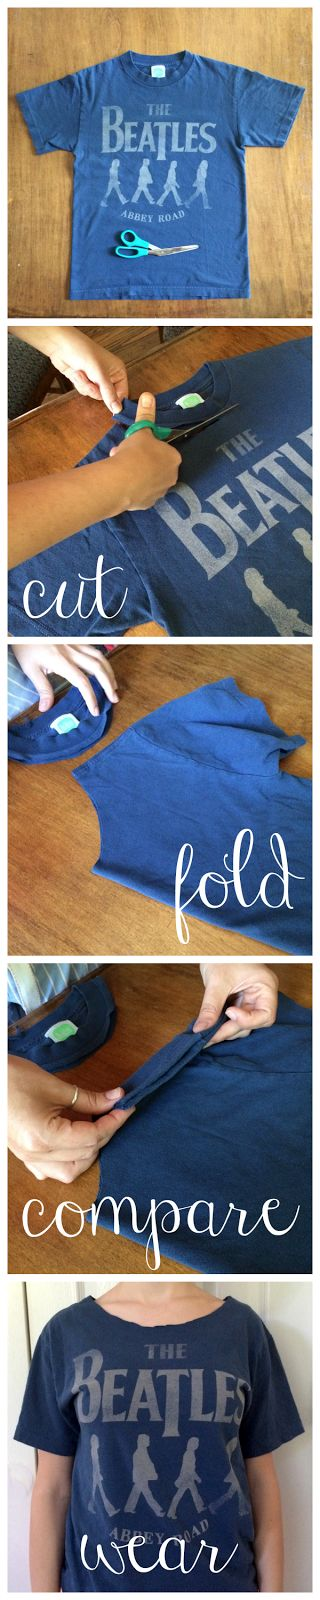 Rock Paper Feather: Quick Craft: Cut Off a T-shirt Collar Like a Pro